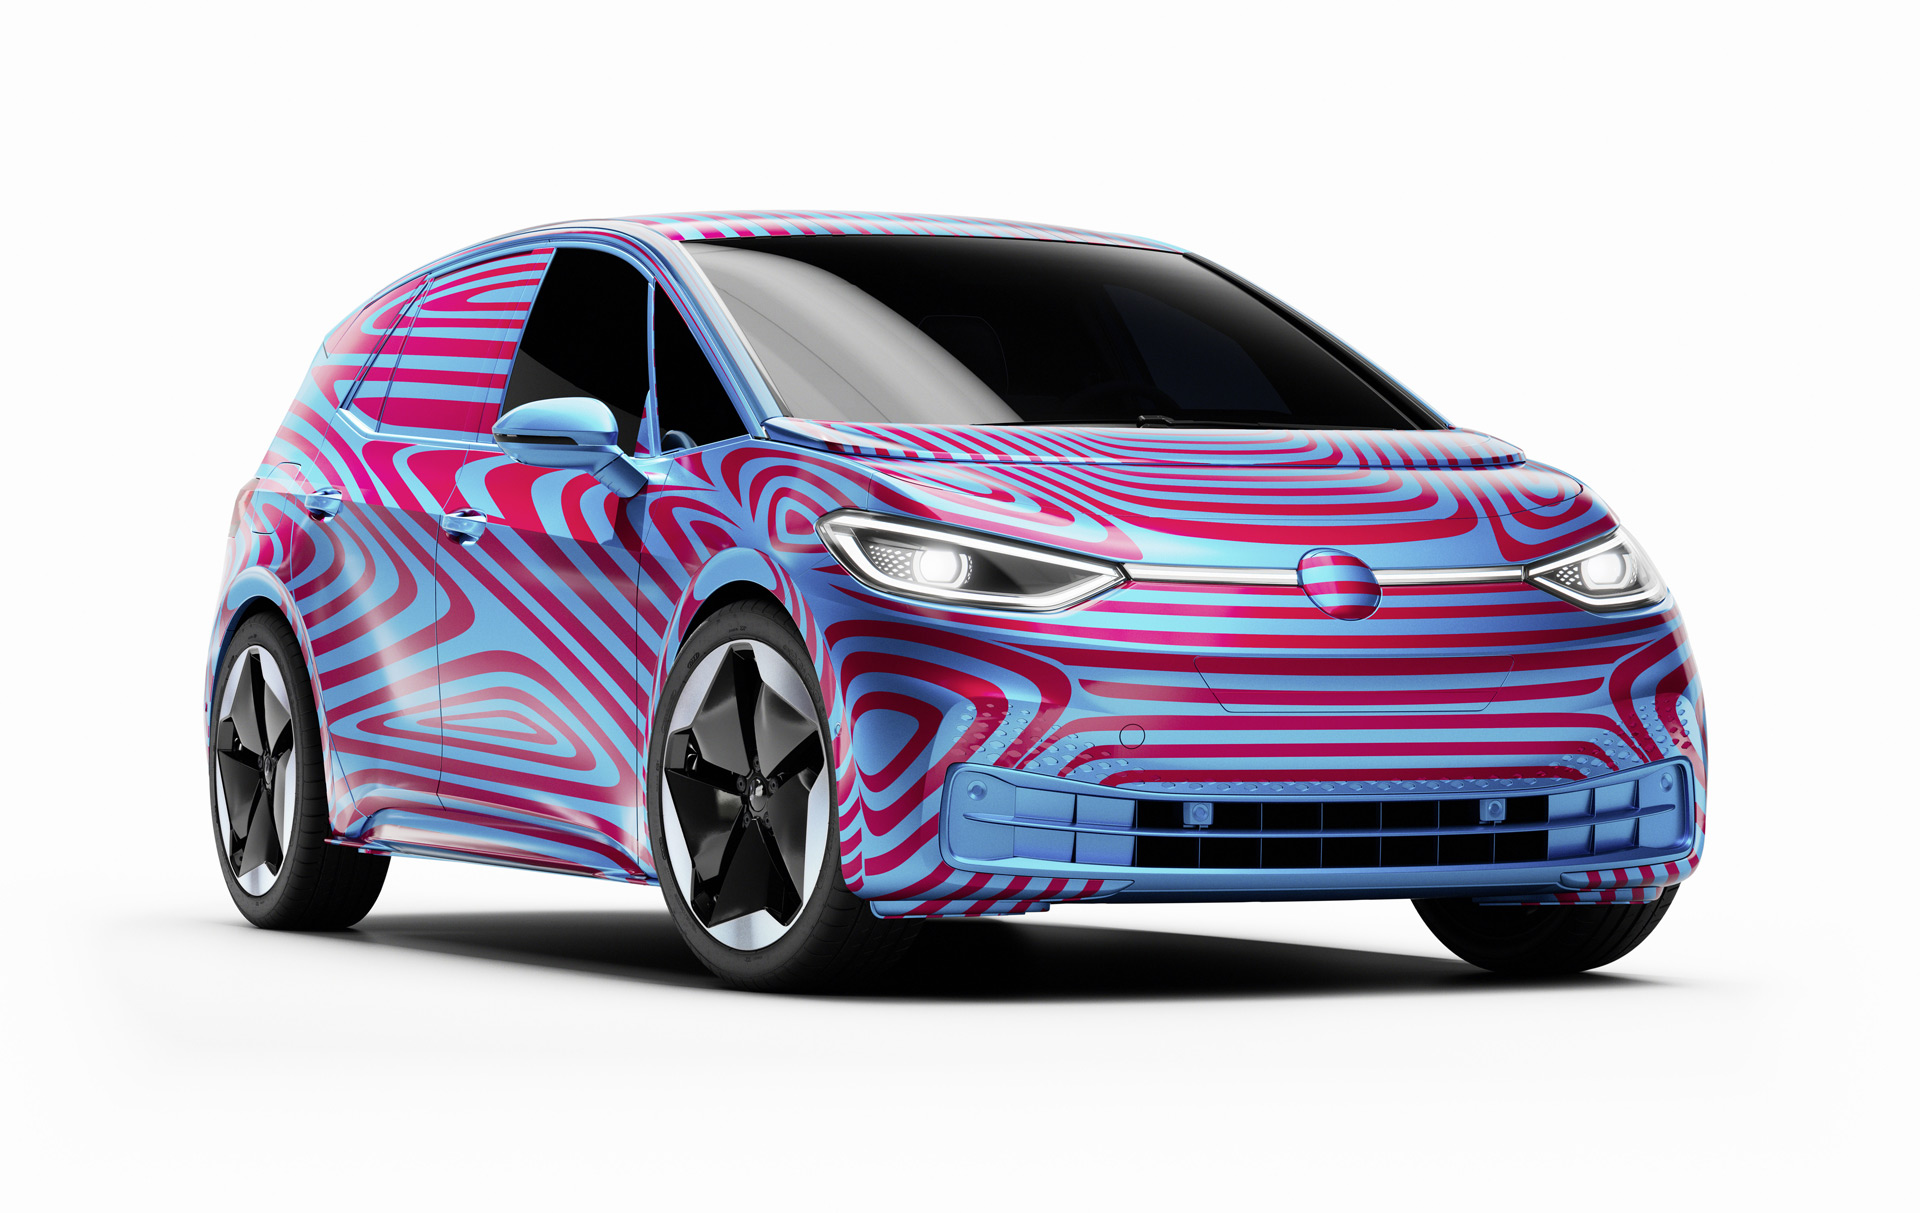 Vw Confirms Electric Hatch As The Id 3 As Order Books Open